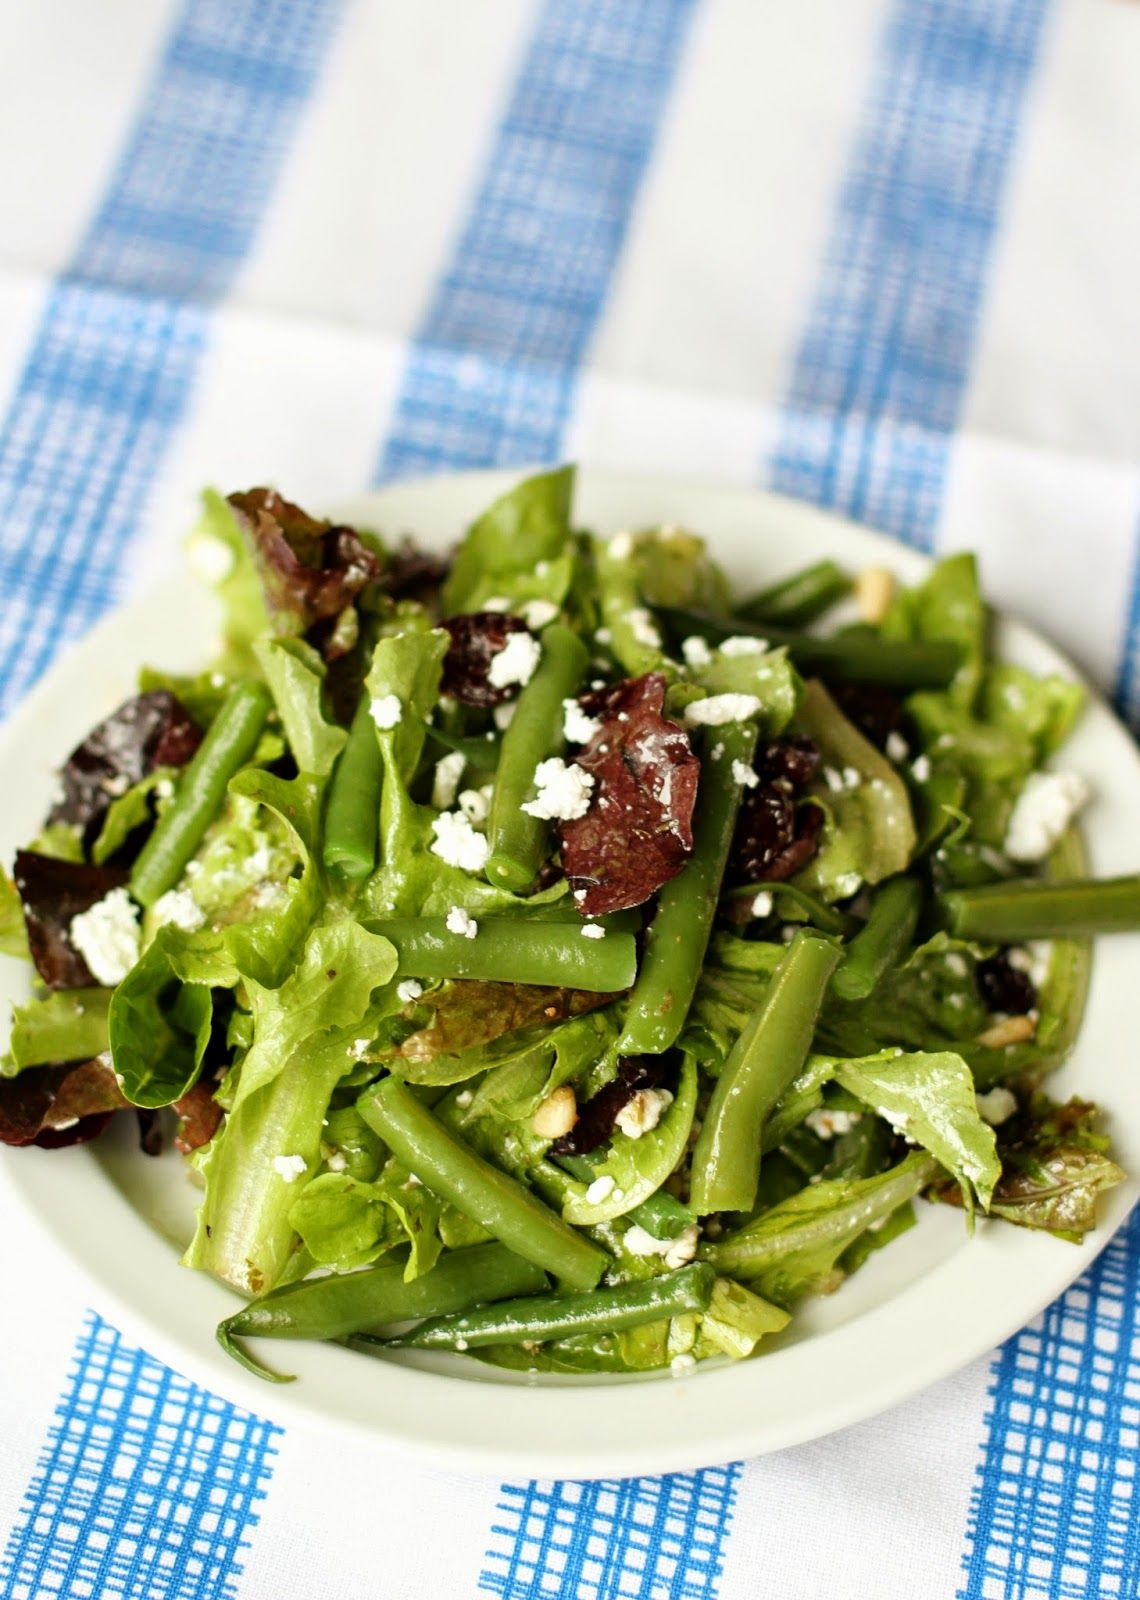 Küchendesign-logo salad with goat cheese dried cherries pine nuts and green beans